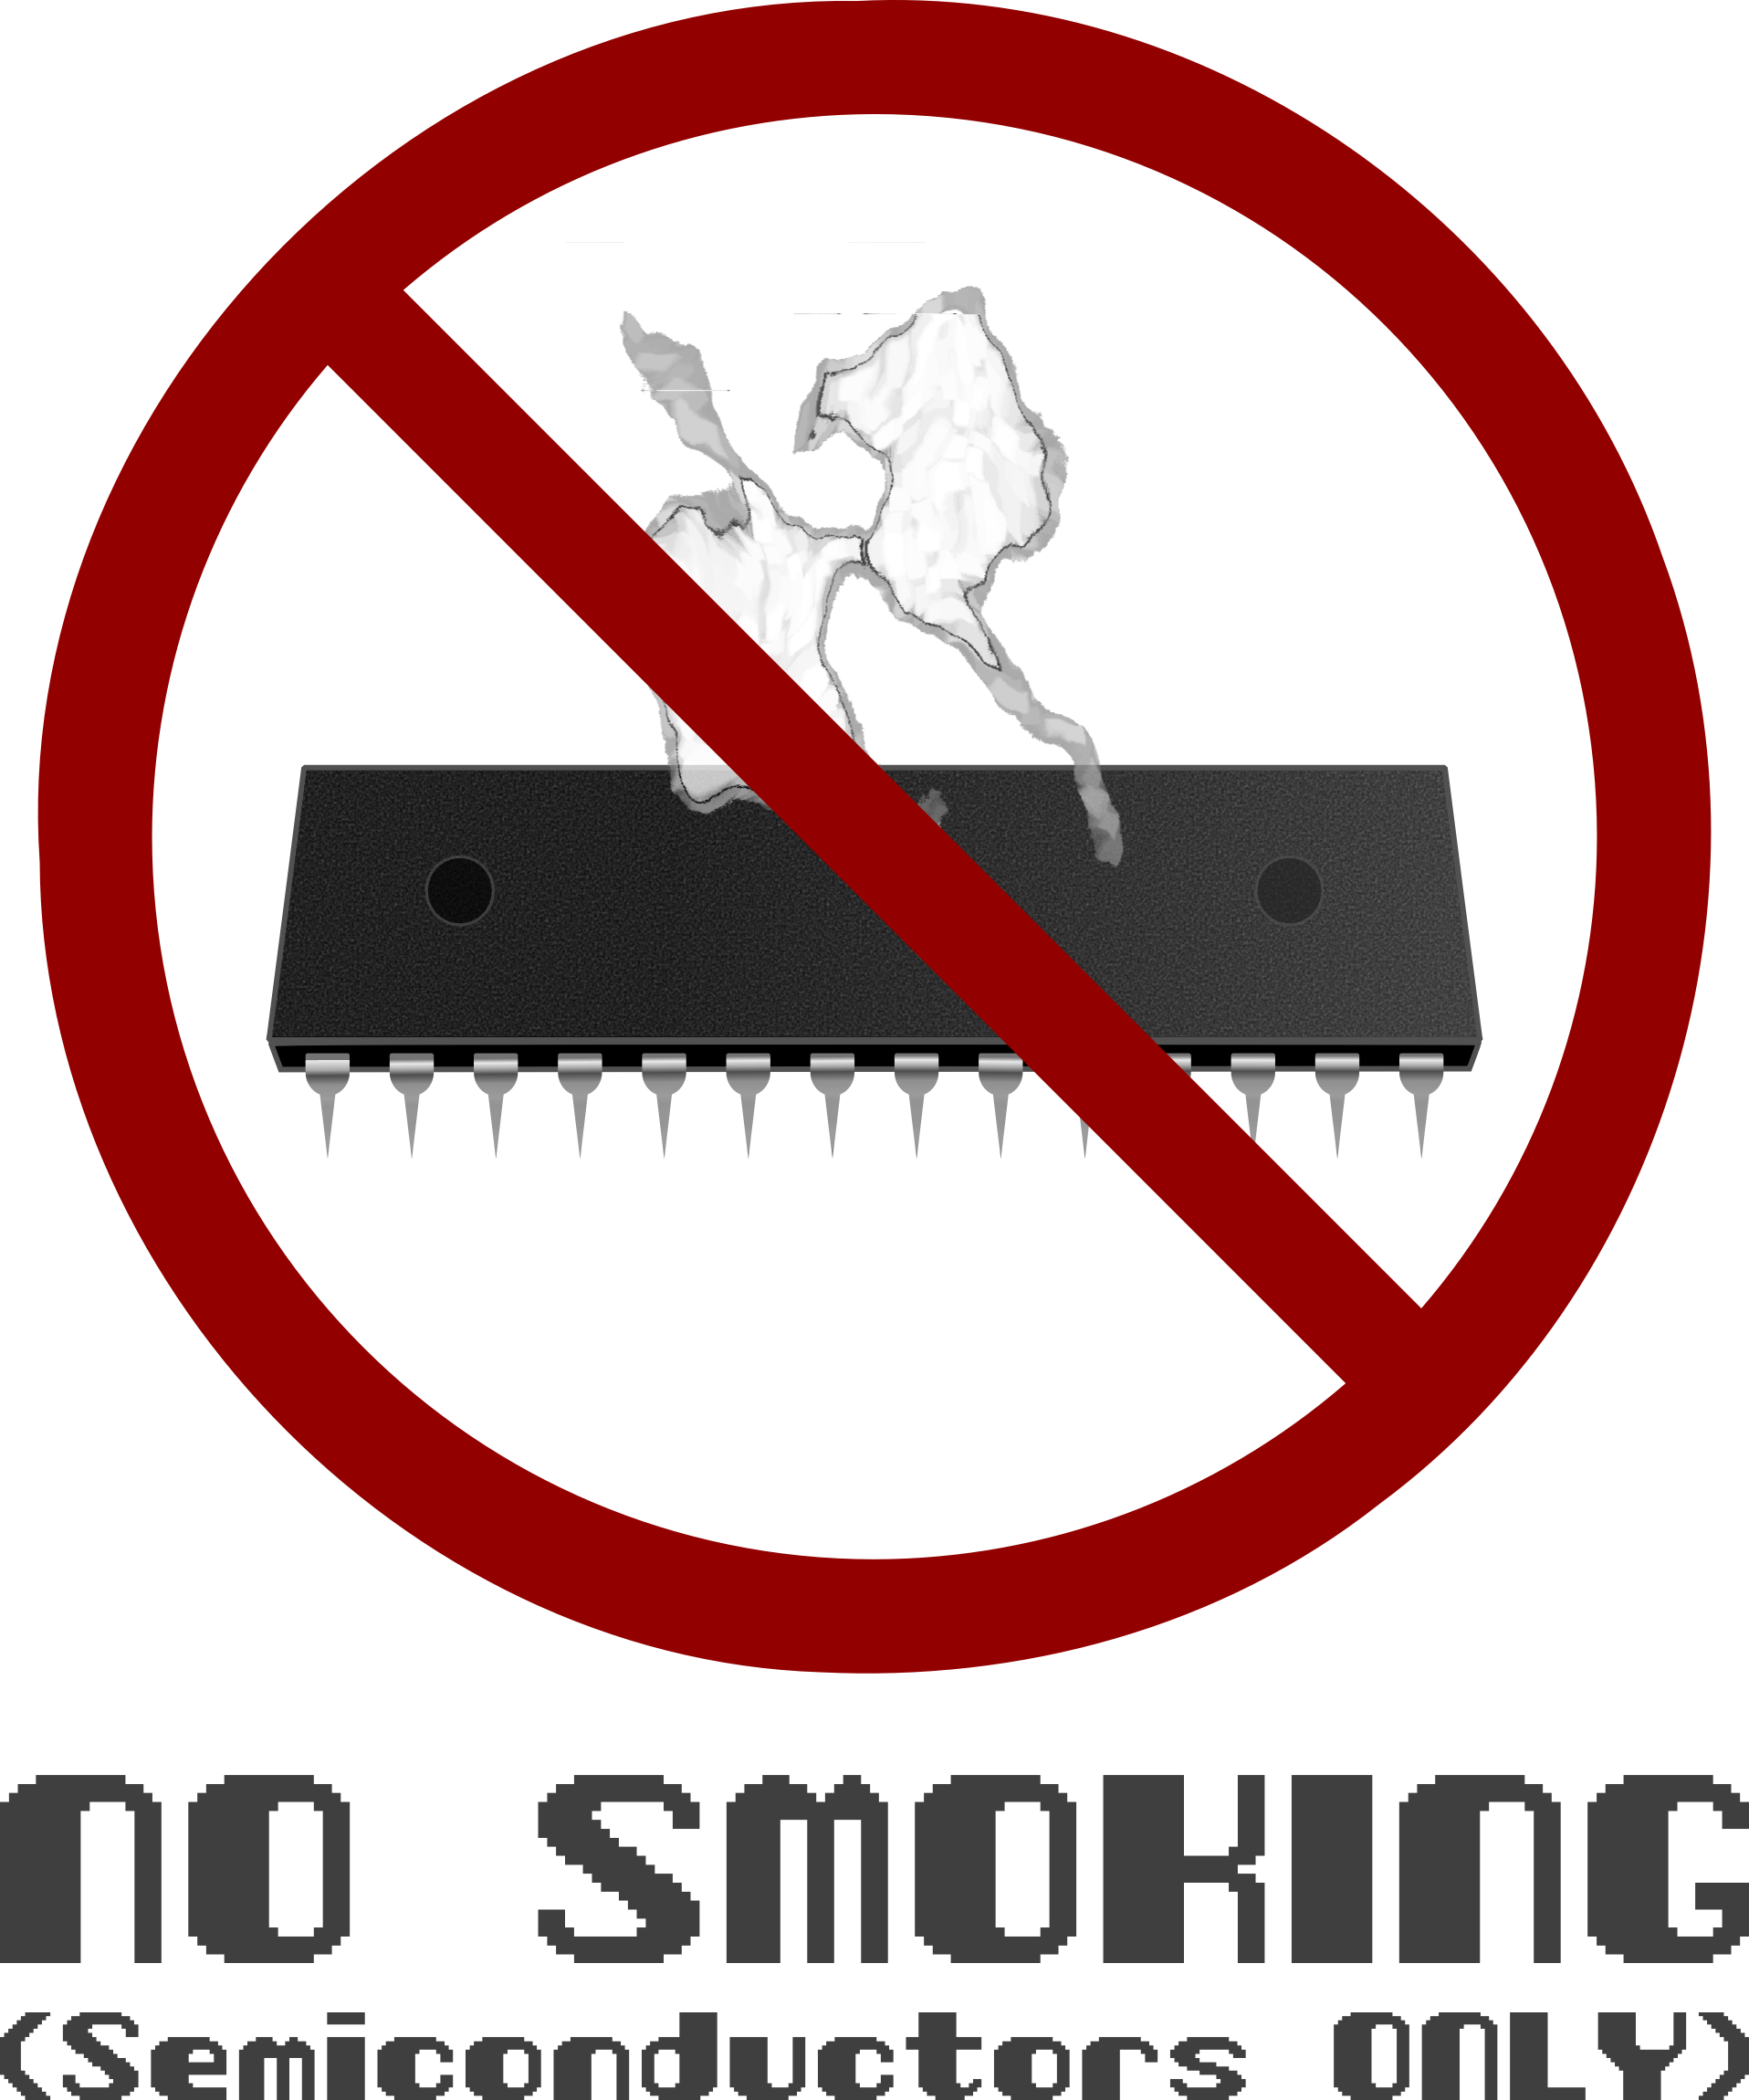 No Smoking CPUs by Arvin61r58